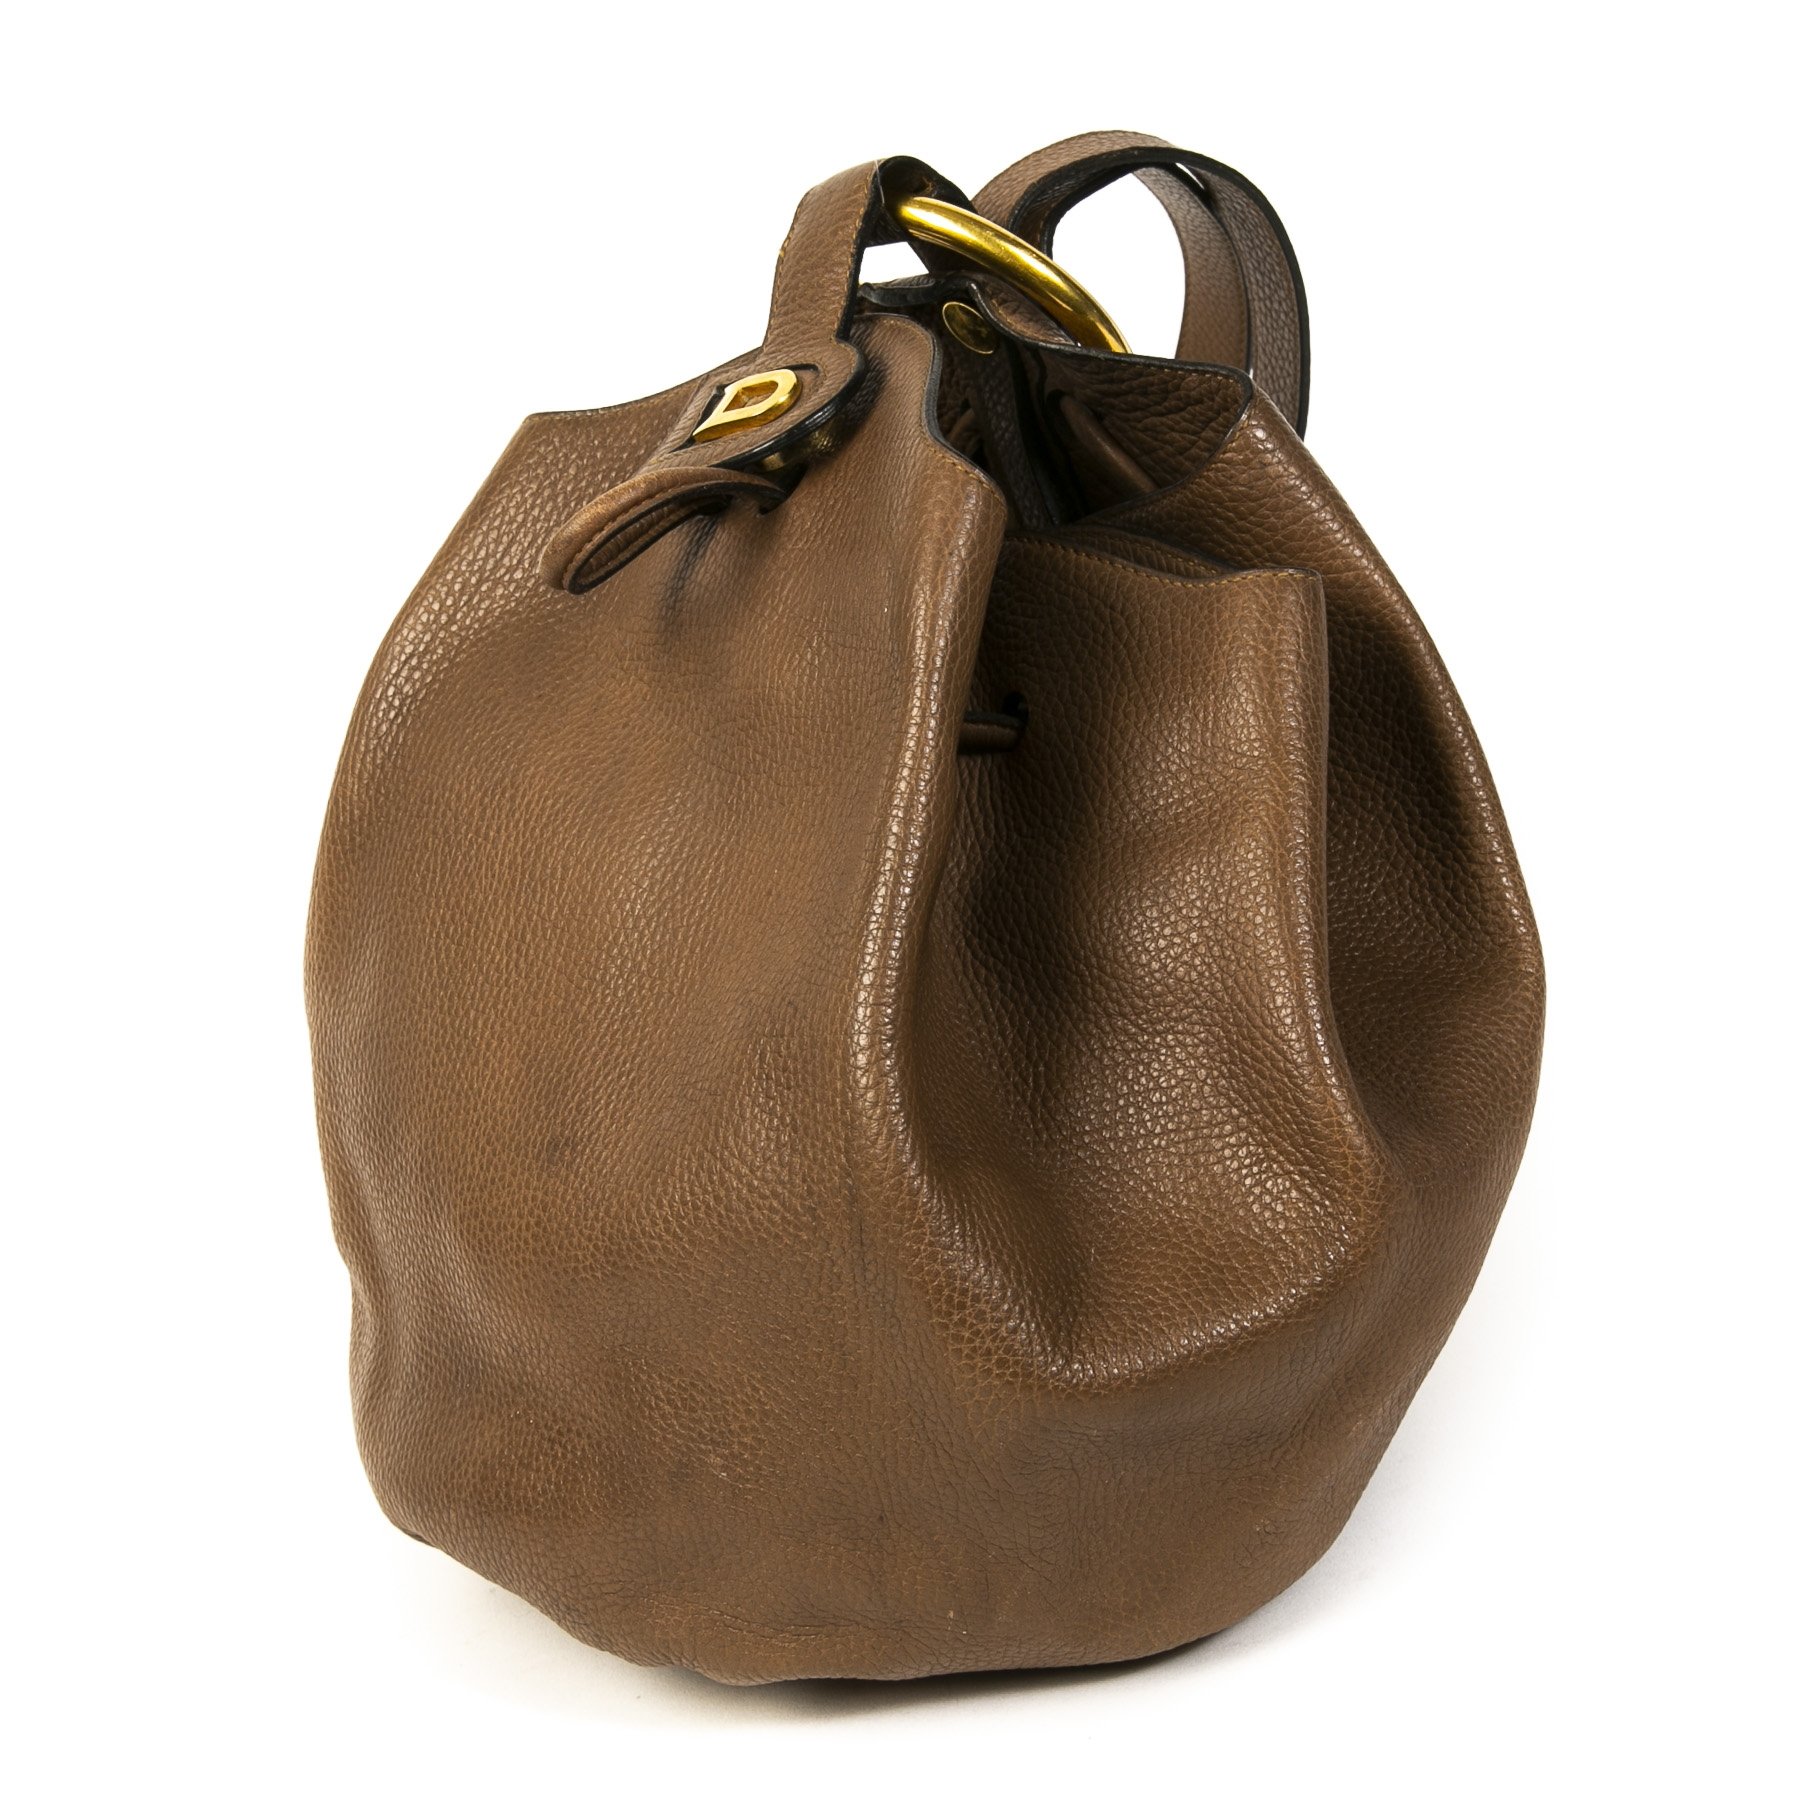 Delvaux Brown Leather Rose des Vents Bucket Bag